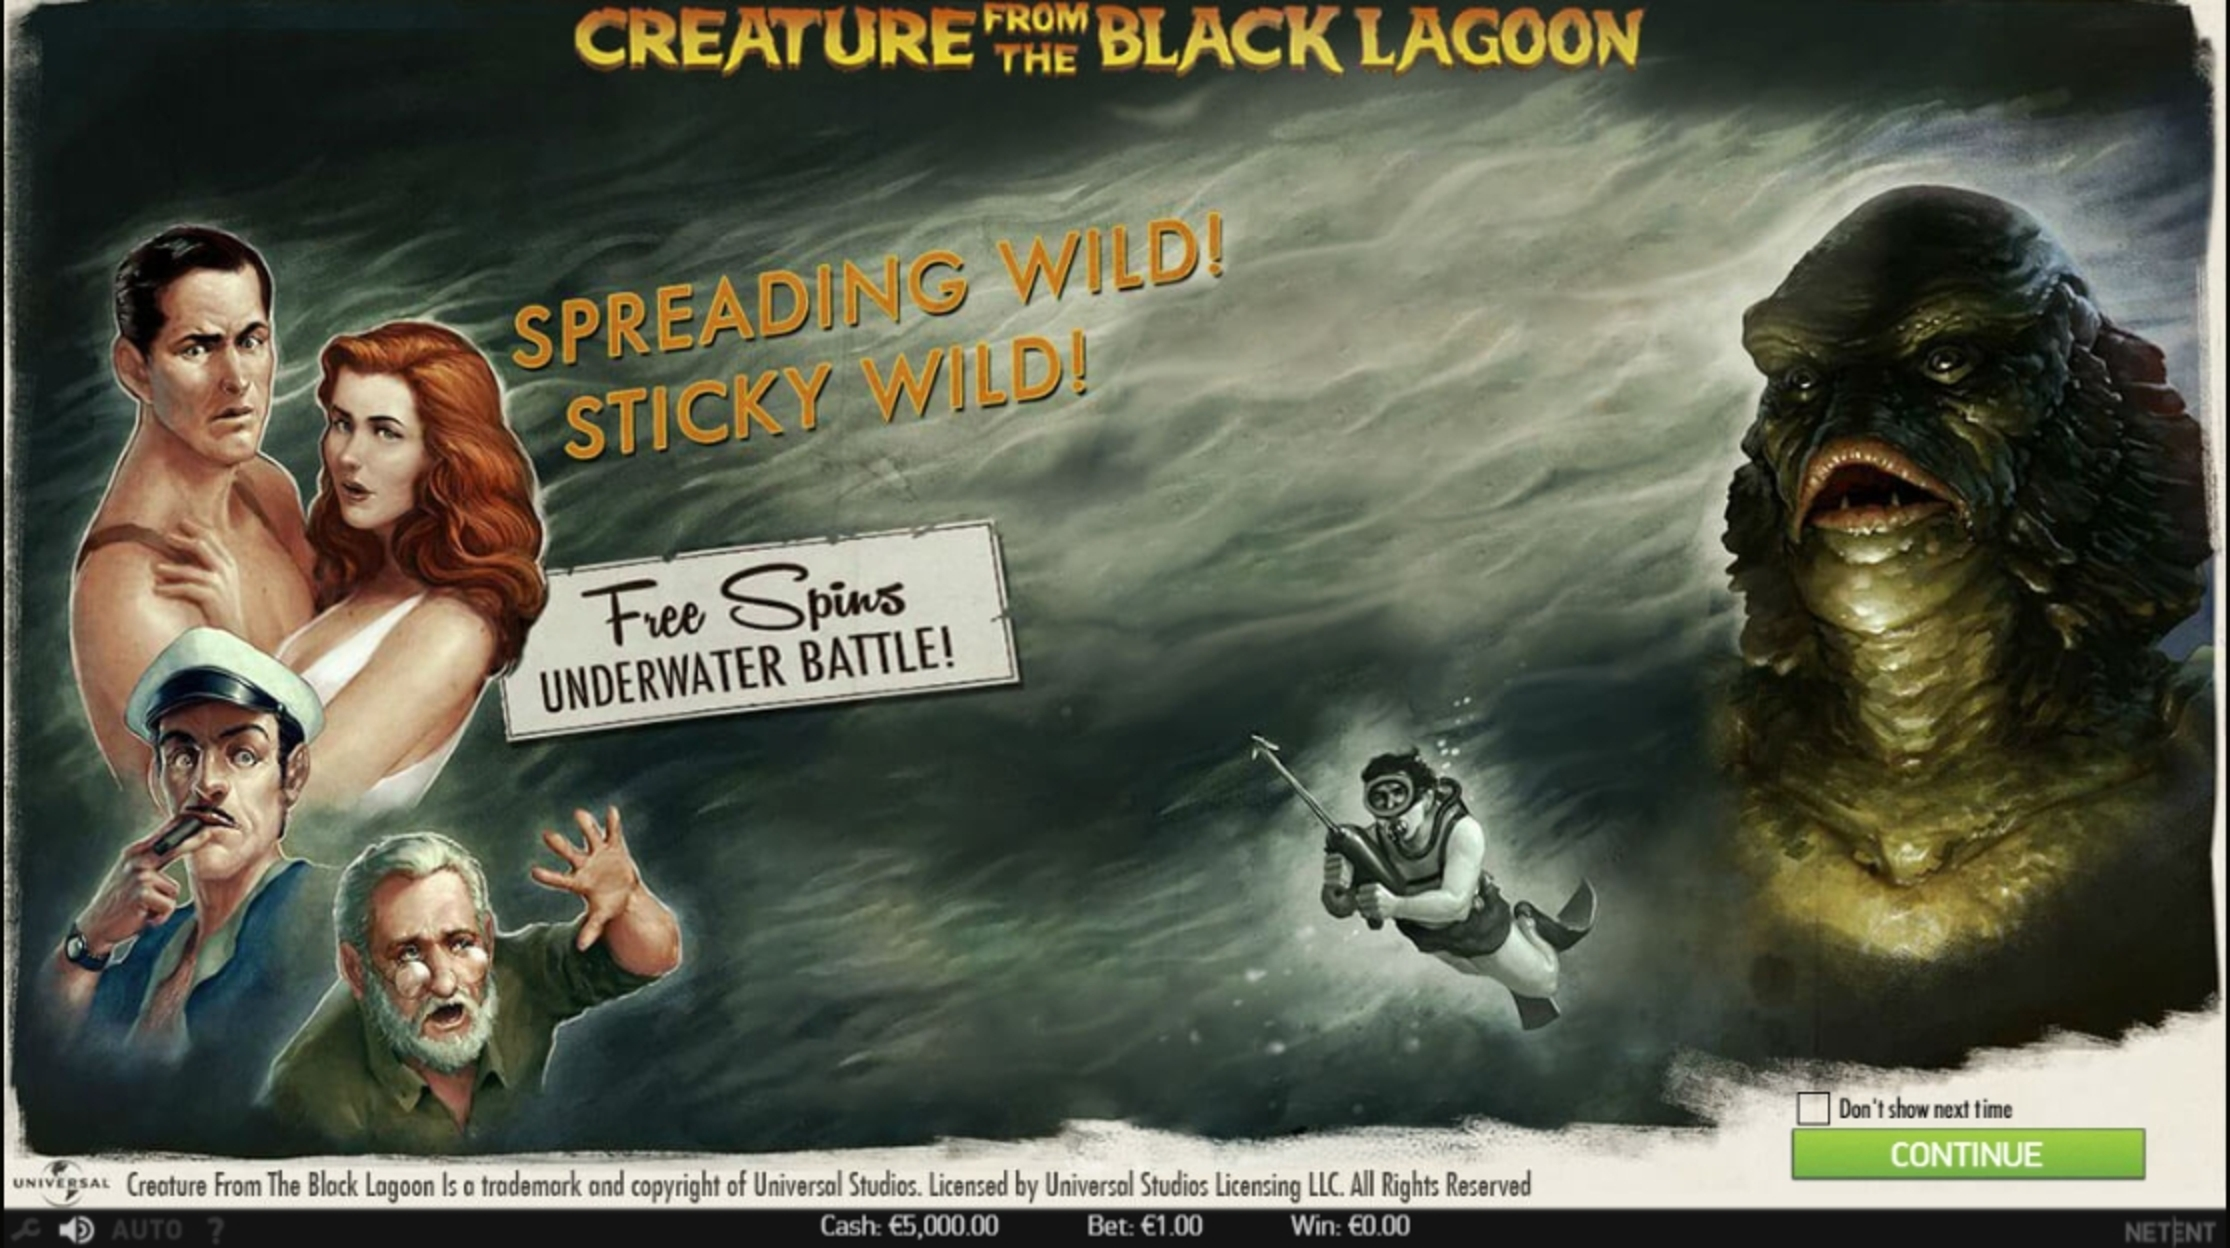 Play Creature from the Black Lagoon Free Casino Slot Game by NetEnt